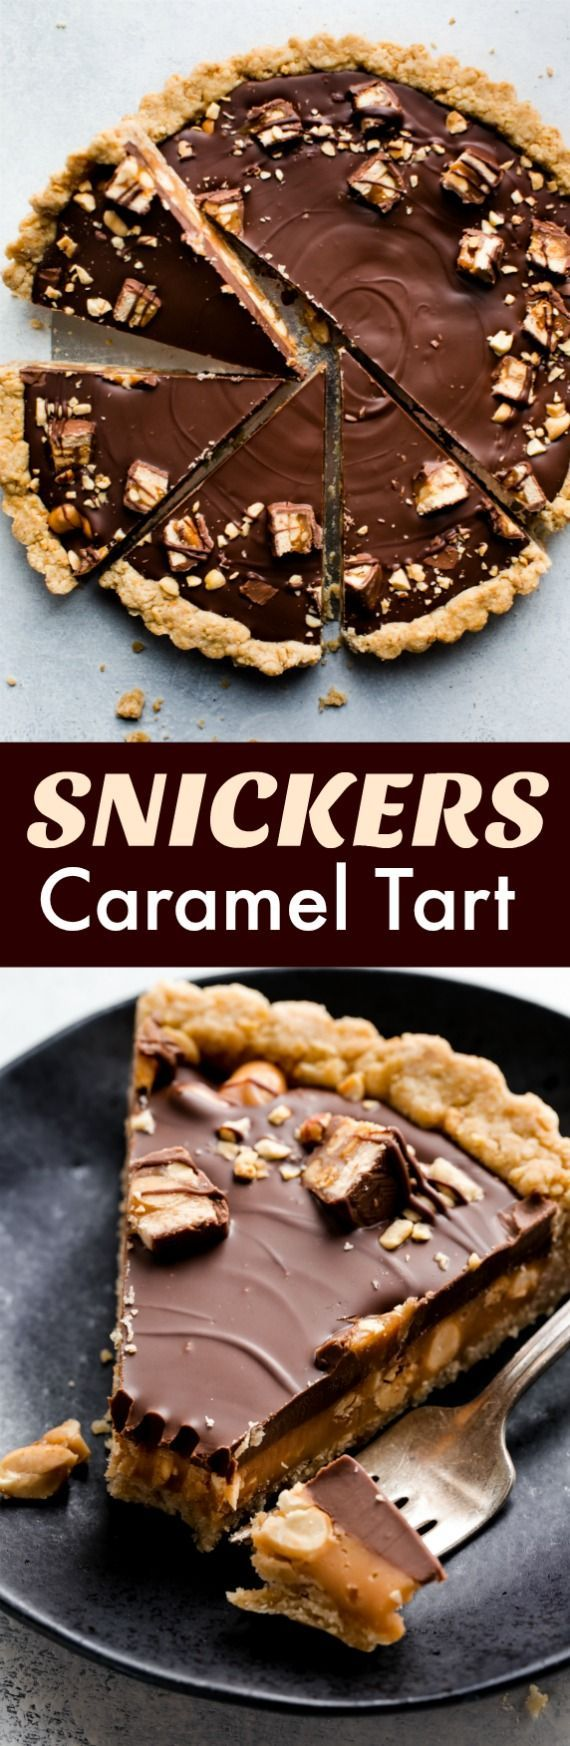 Snickers caramel tart recipe with peanut butter, milk chocolate, peanuts, and salted caramel for a sweet and salty dessert! Recipe on http://sallysbakingaddiction.com